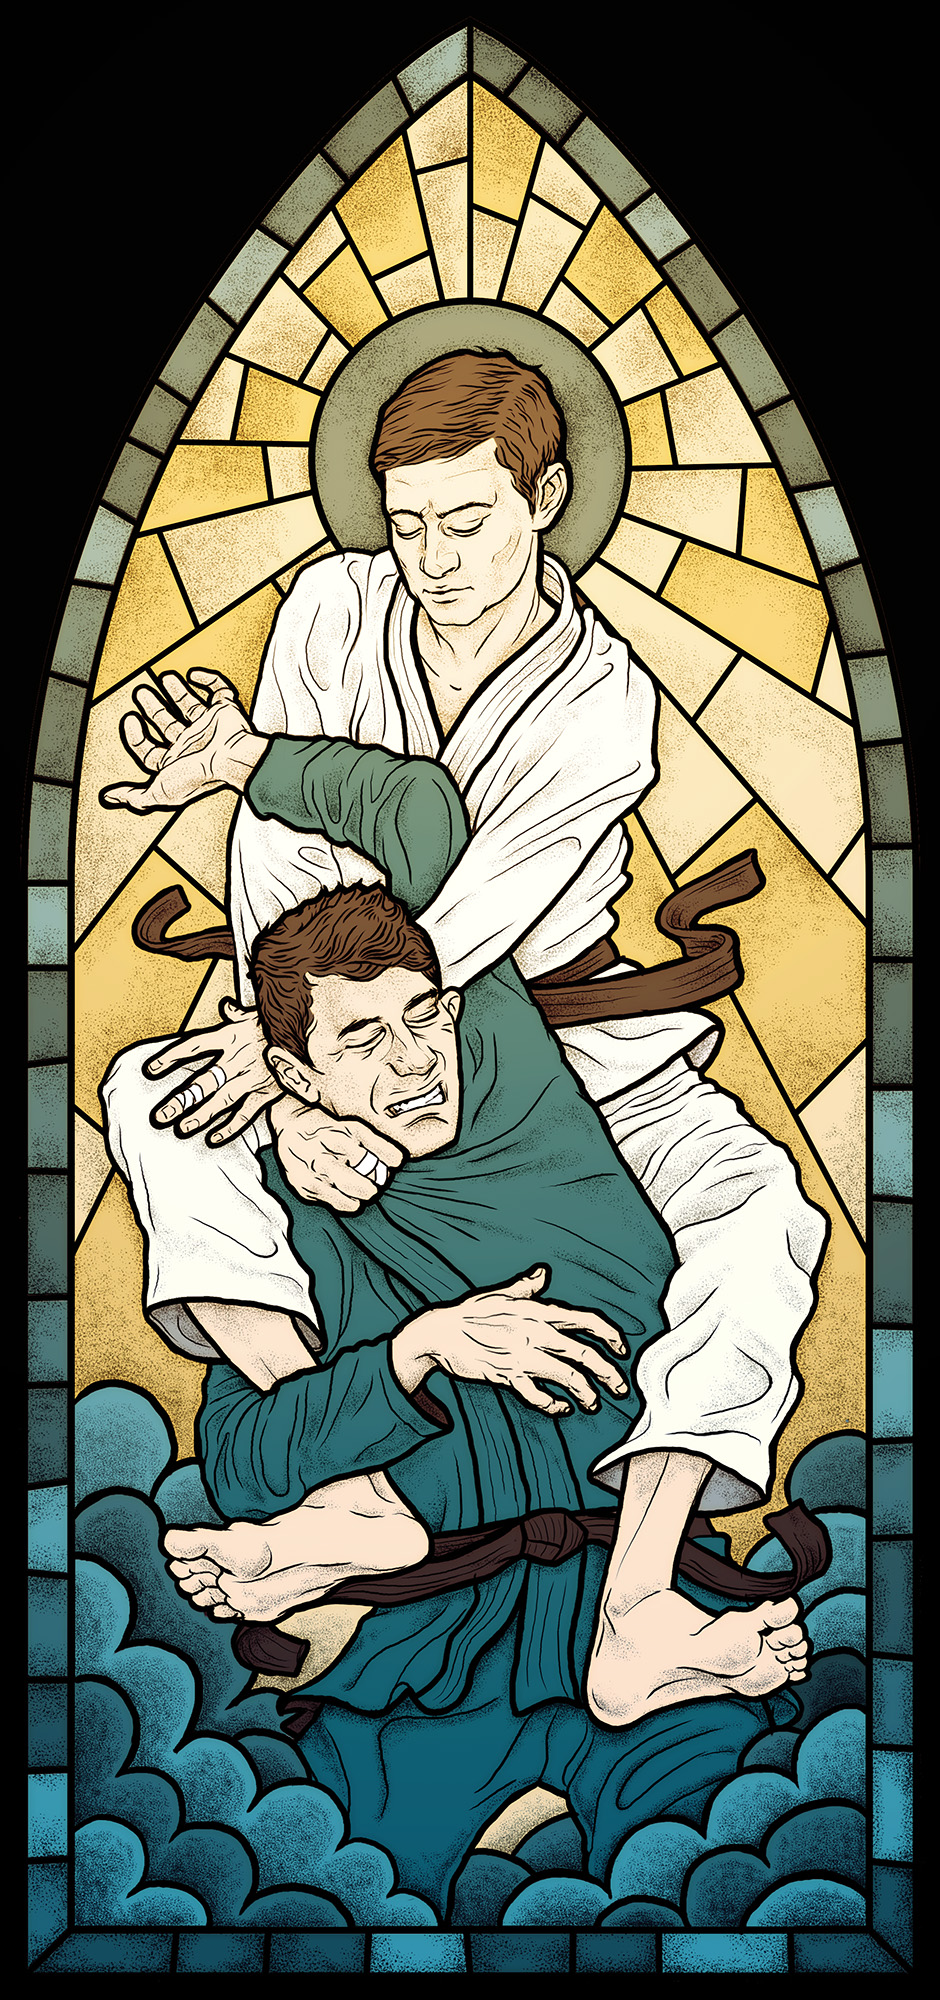 BJJ poster stained glass window of men grappling